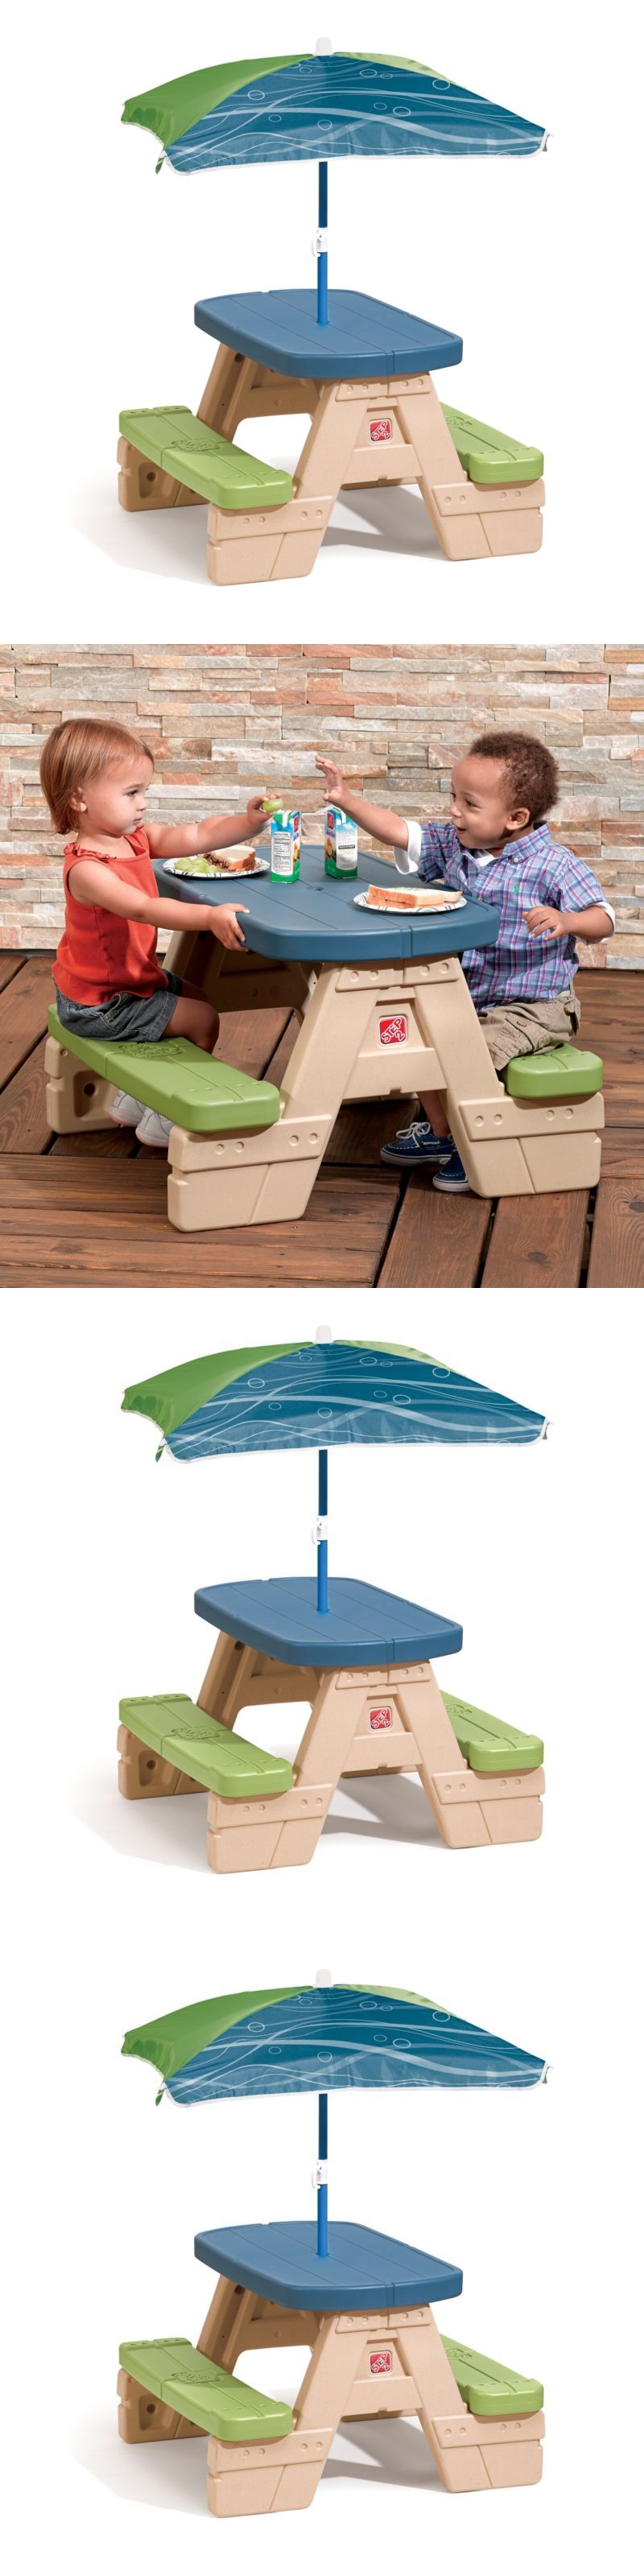 Step 2 52344 portable kids travel sit and play picnic table set w step 2 52344 portable kids travel sit and play picnic table set w umbrella foldable watchthetrailerfo